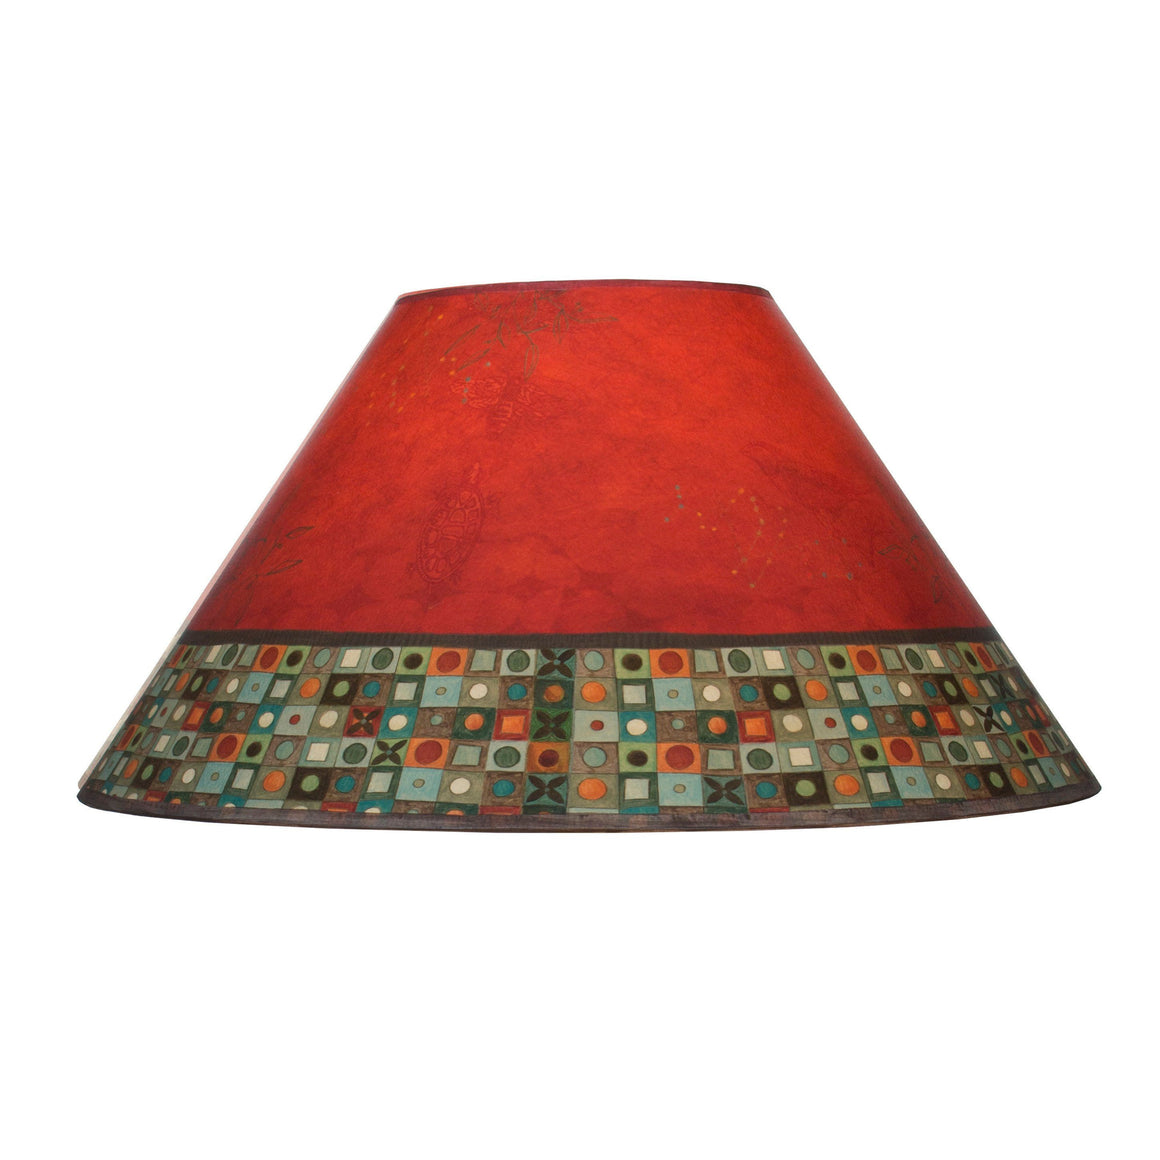 Large Conical Lamp Shade in Red Mosaic